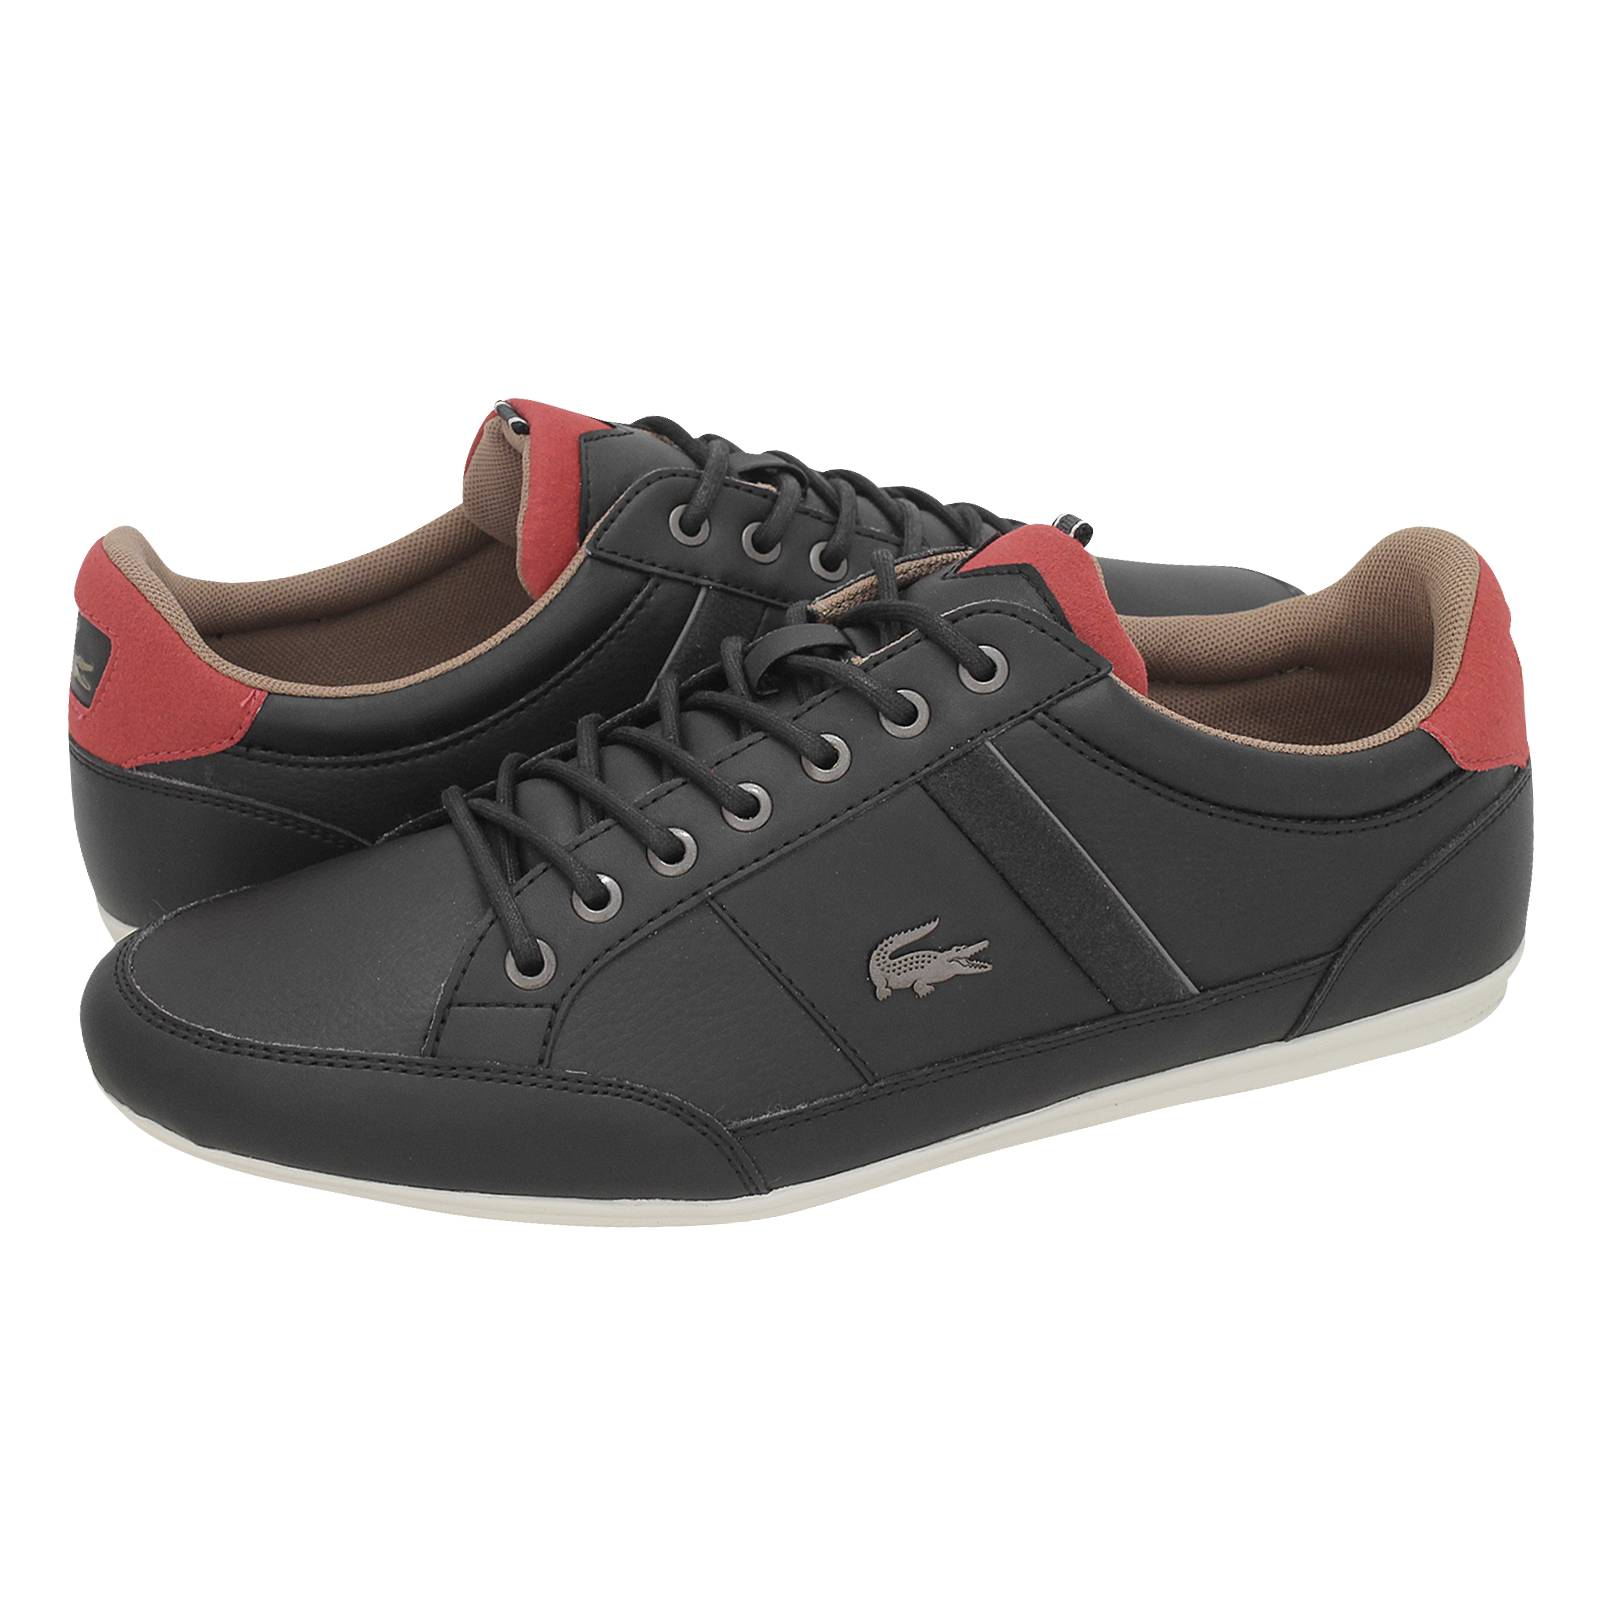 7ff4322af7aad5 Chaymon 118 2 - Lacoste Men s casual shoes made of synthetic leather ...